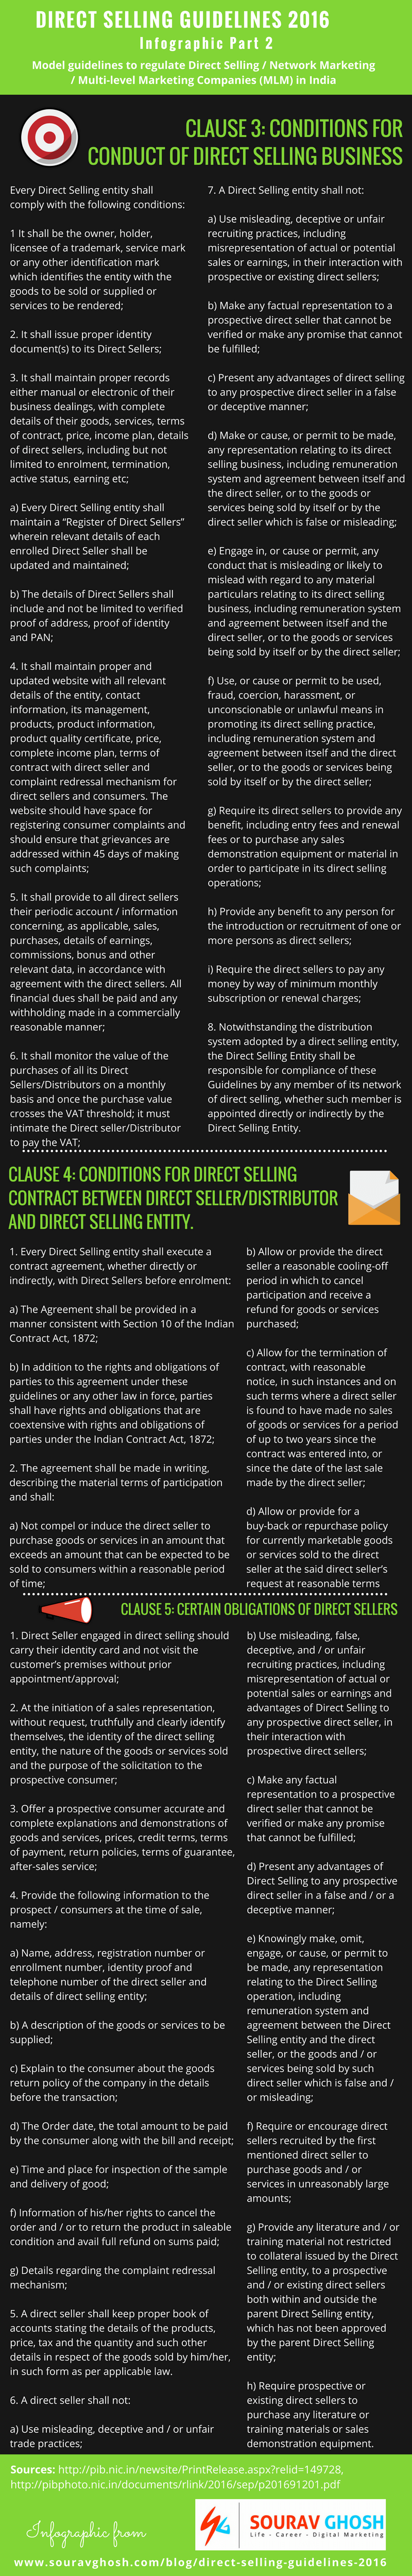 Indian MLM / Network Marketing / Direct Selling Guidelines 2016 Infographic Part 2